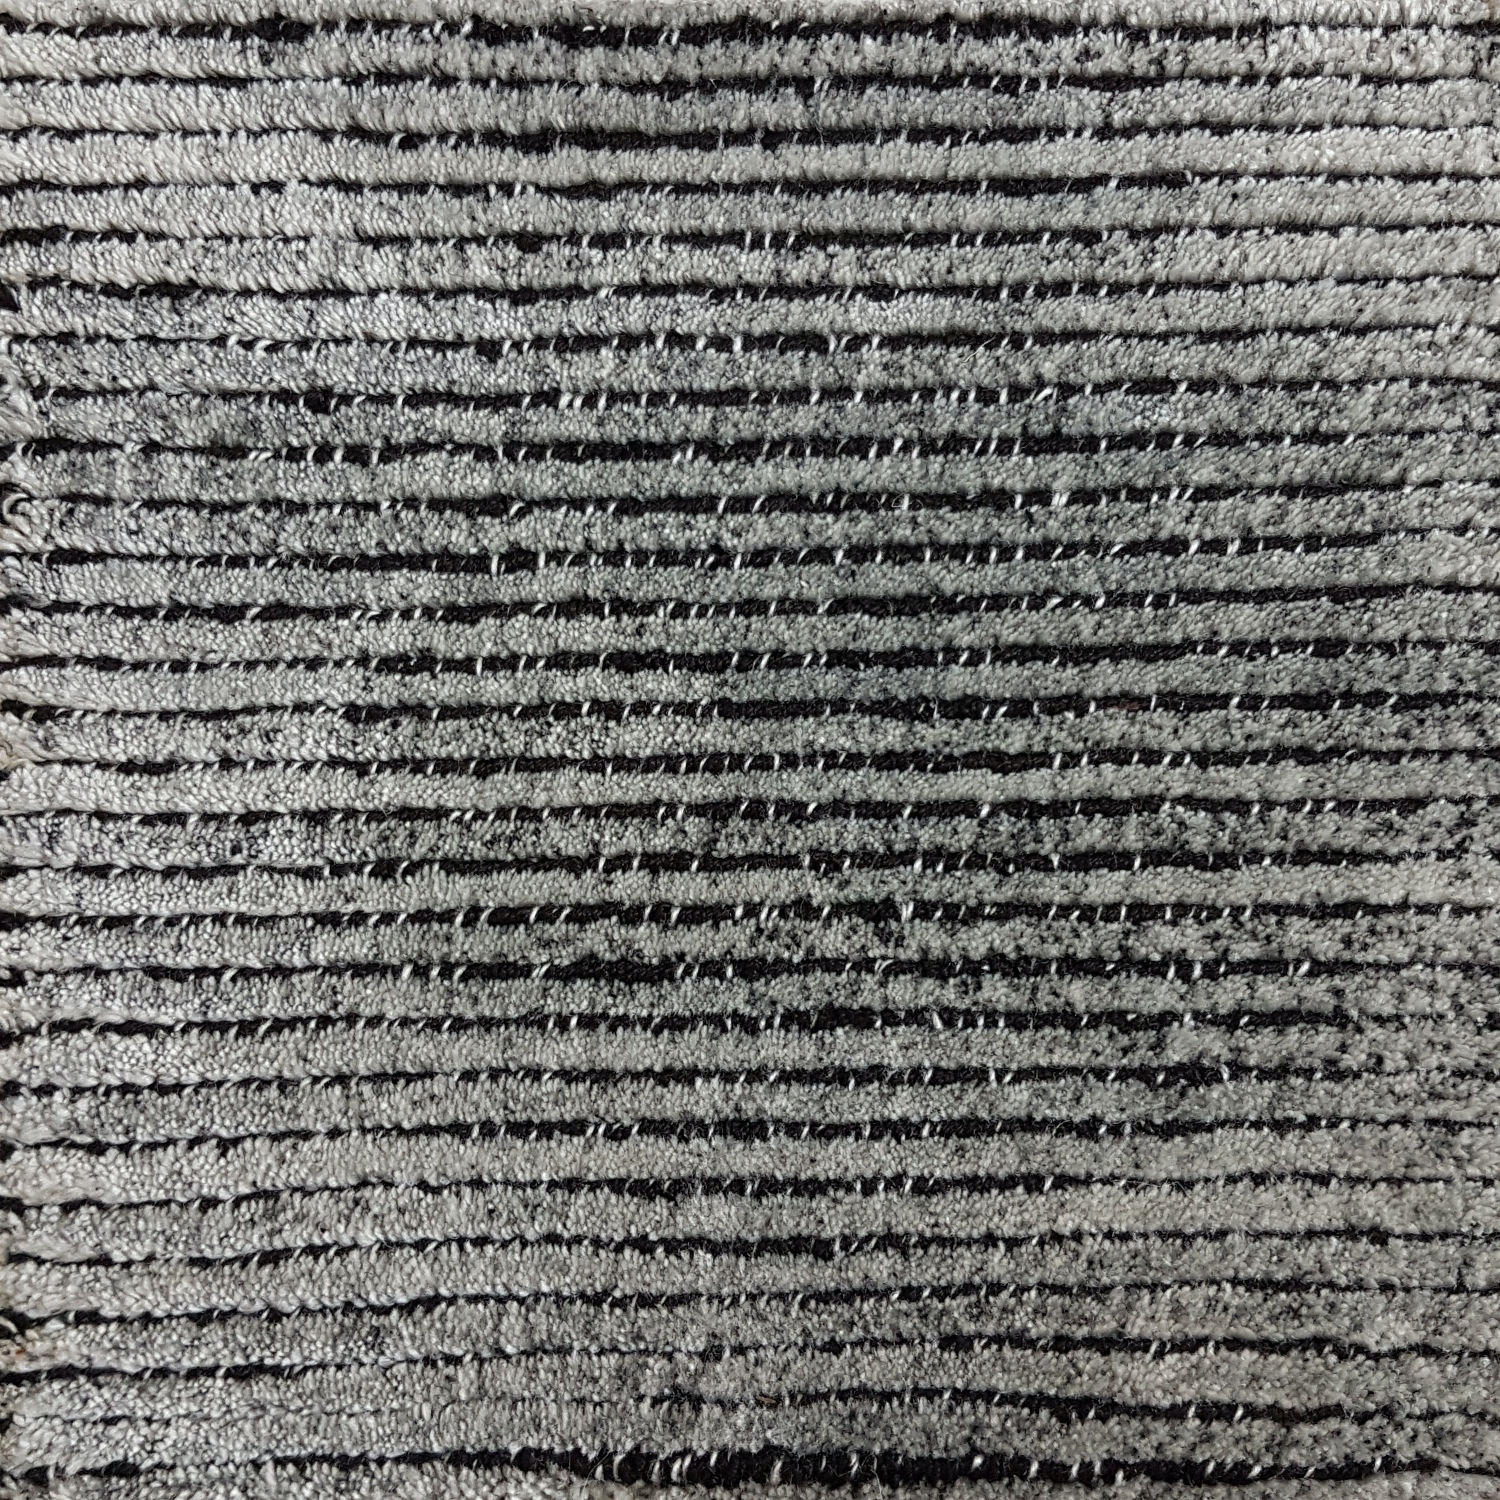 Brunschwig Carpet V12-9917/Sp.Grey Black CB-102203.GREY BLACK.0